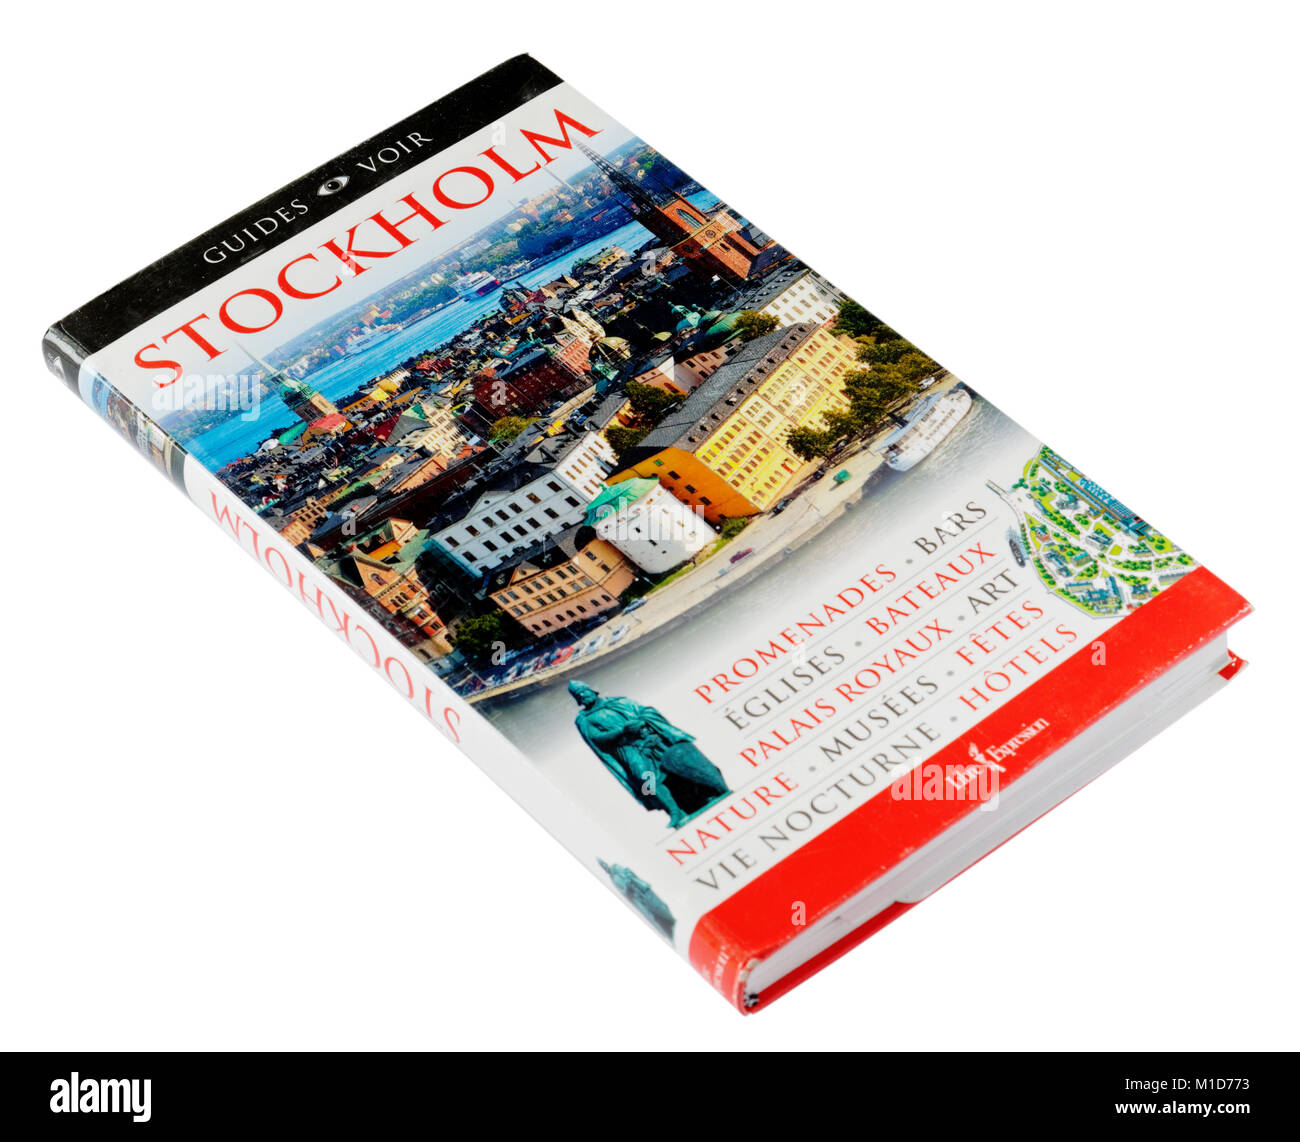 The Guides Voir city guide to Stockholm - Stock Image